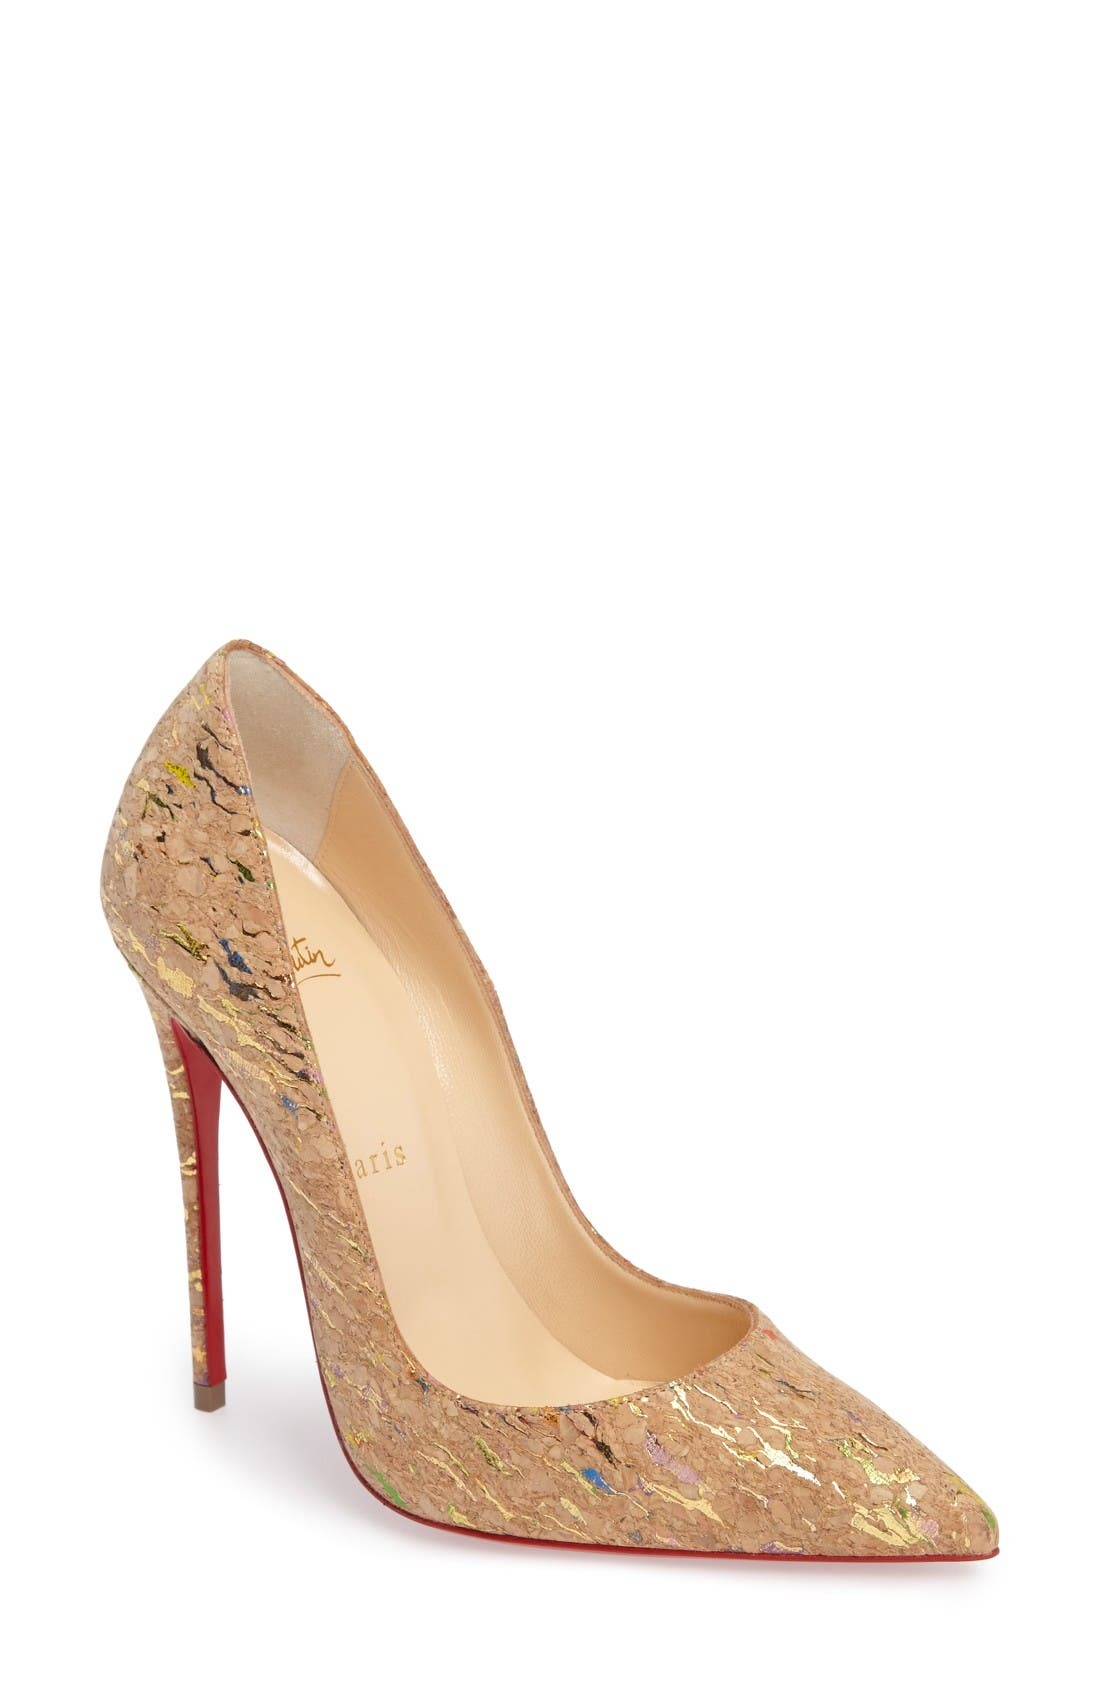 Alternate Image 1 Selected - Christian Louboutin 'So Kate' Pointy Toe Pump (Women)